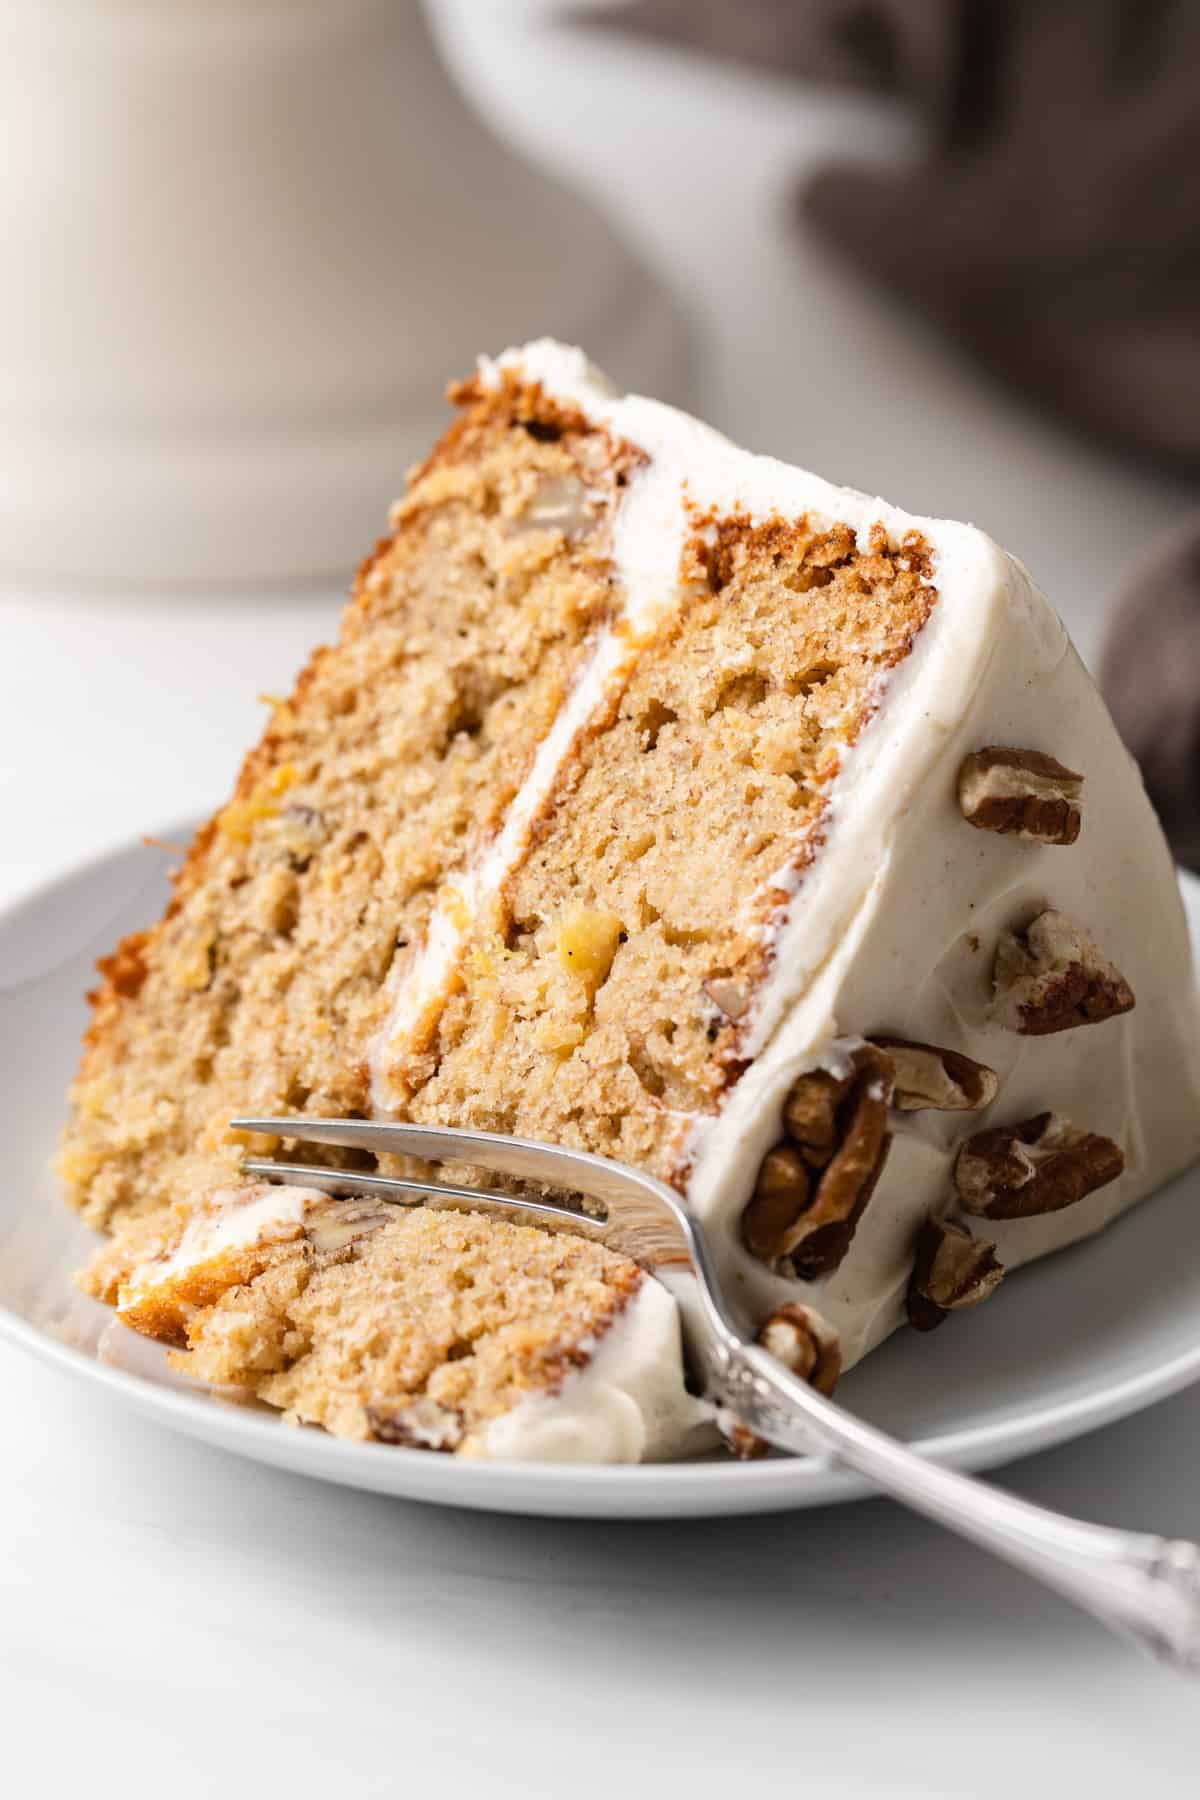 slice of hummingbird cake with fork taking a bite out